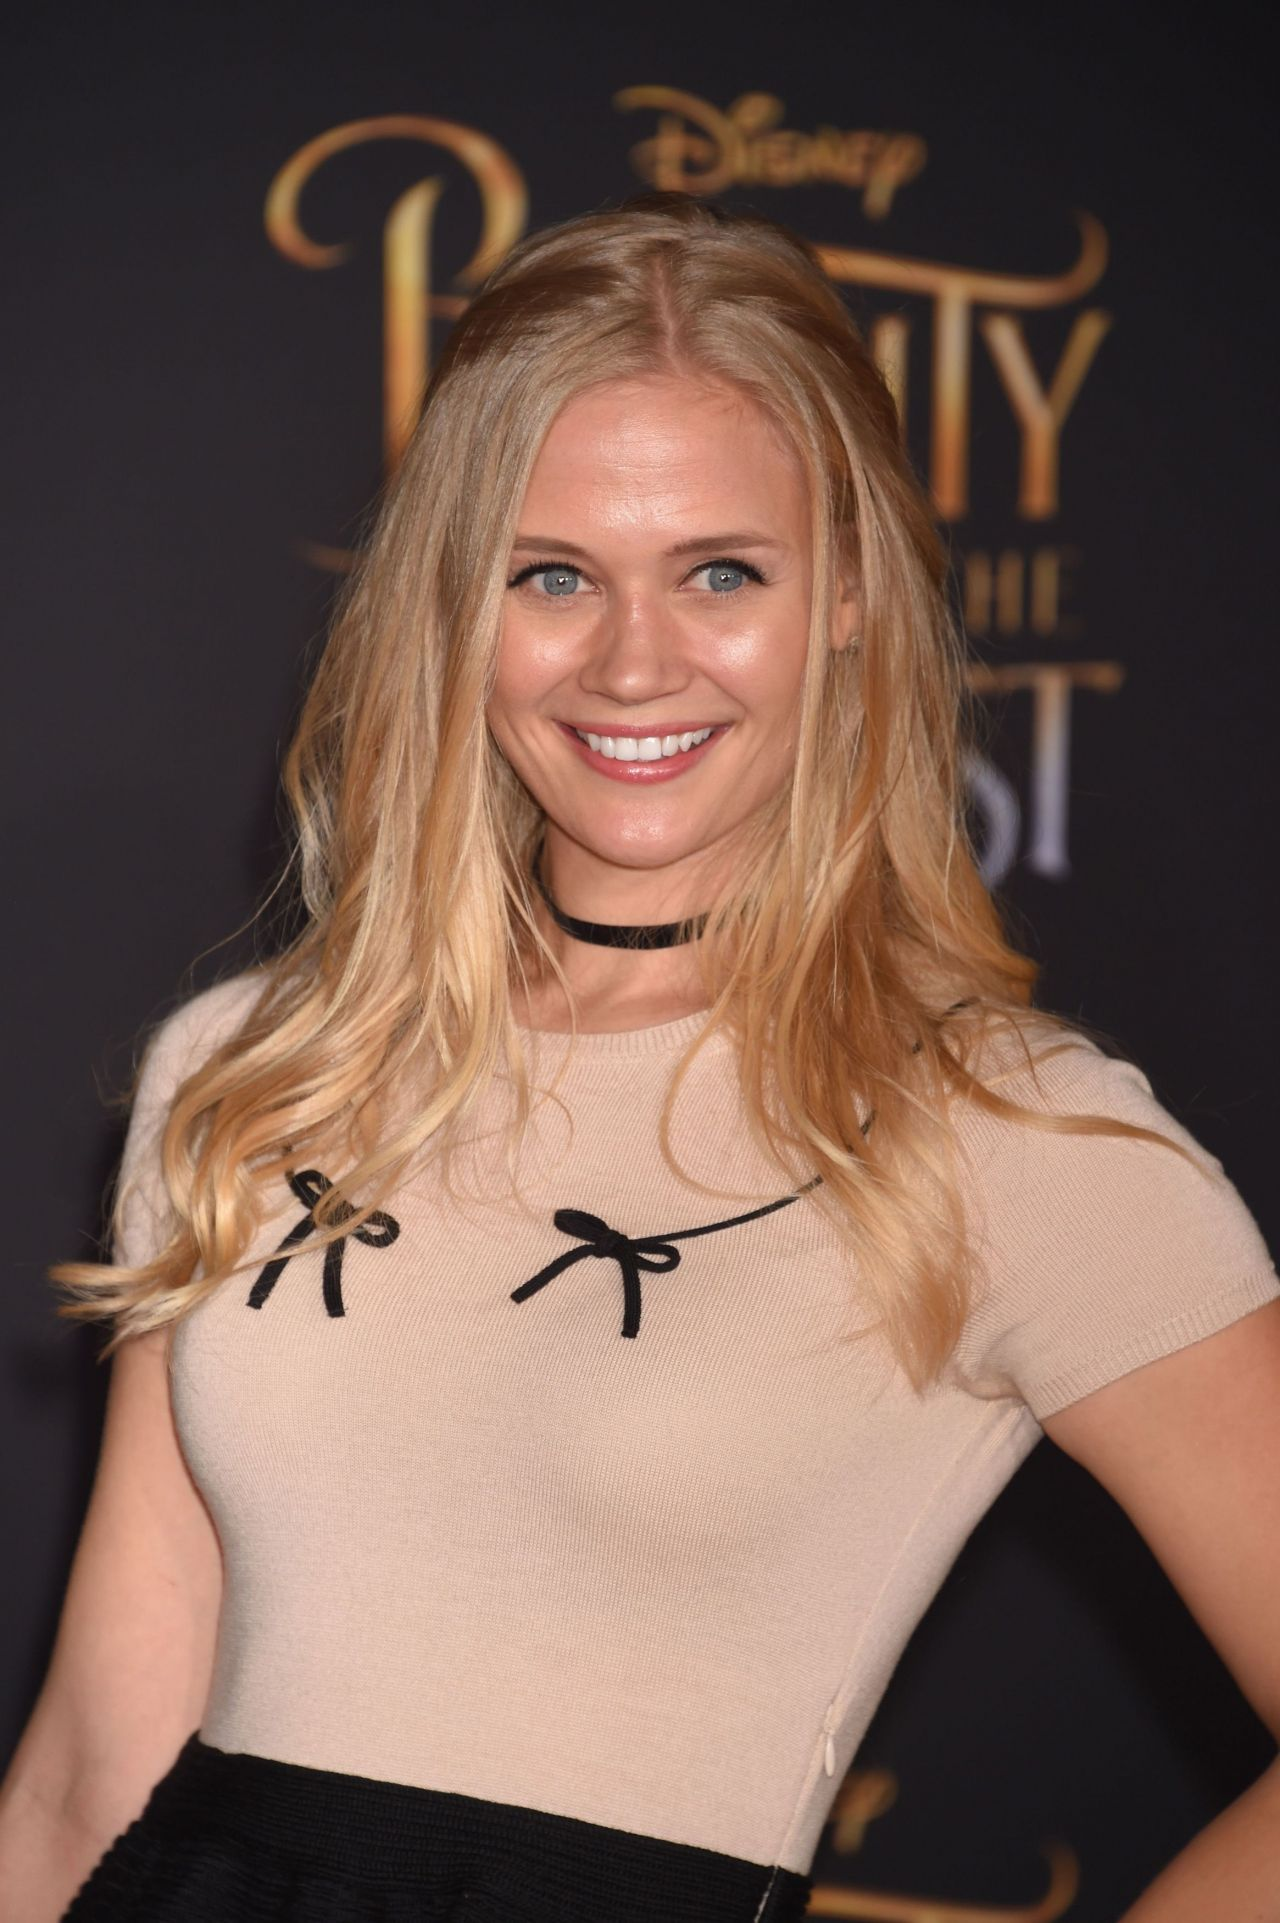 Carly Schroeder Beauty And The Beast Movie Premiere In